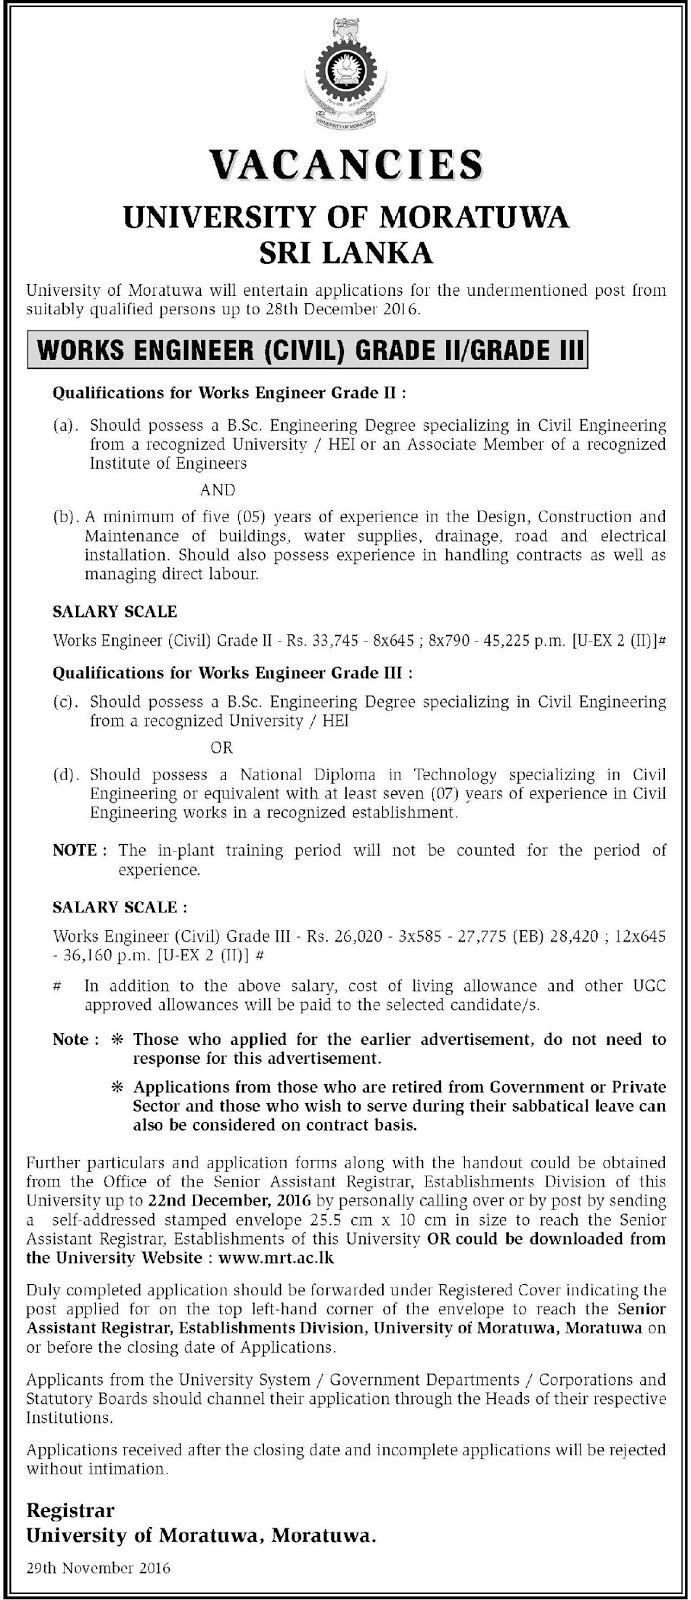 sri lankan government job vacancies at university of moratuwa for civil engineers - Senior Civil Engineer Jobs